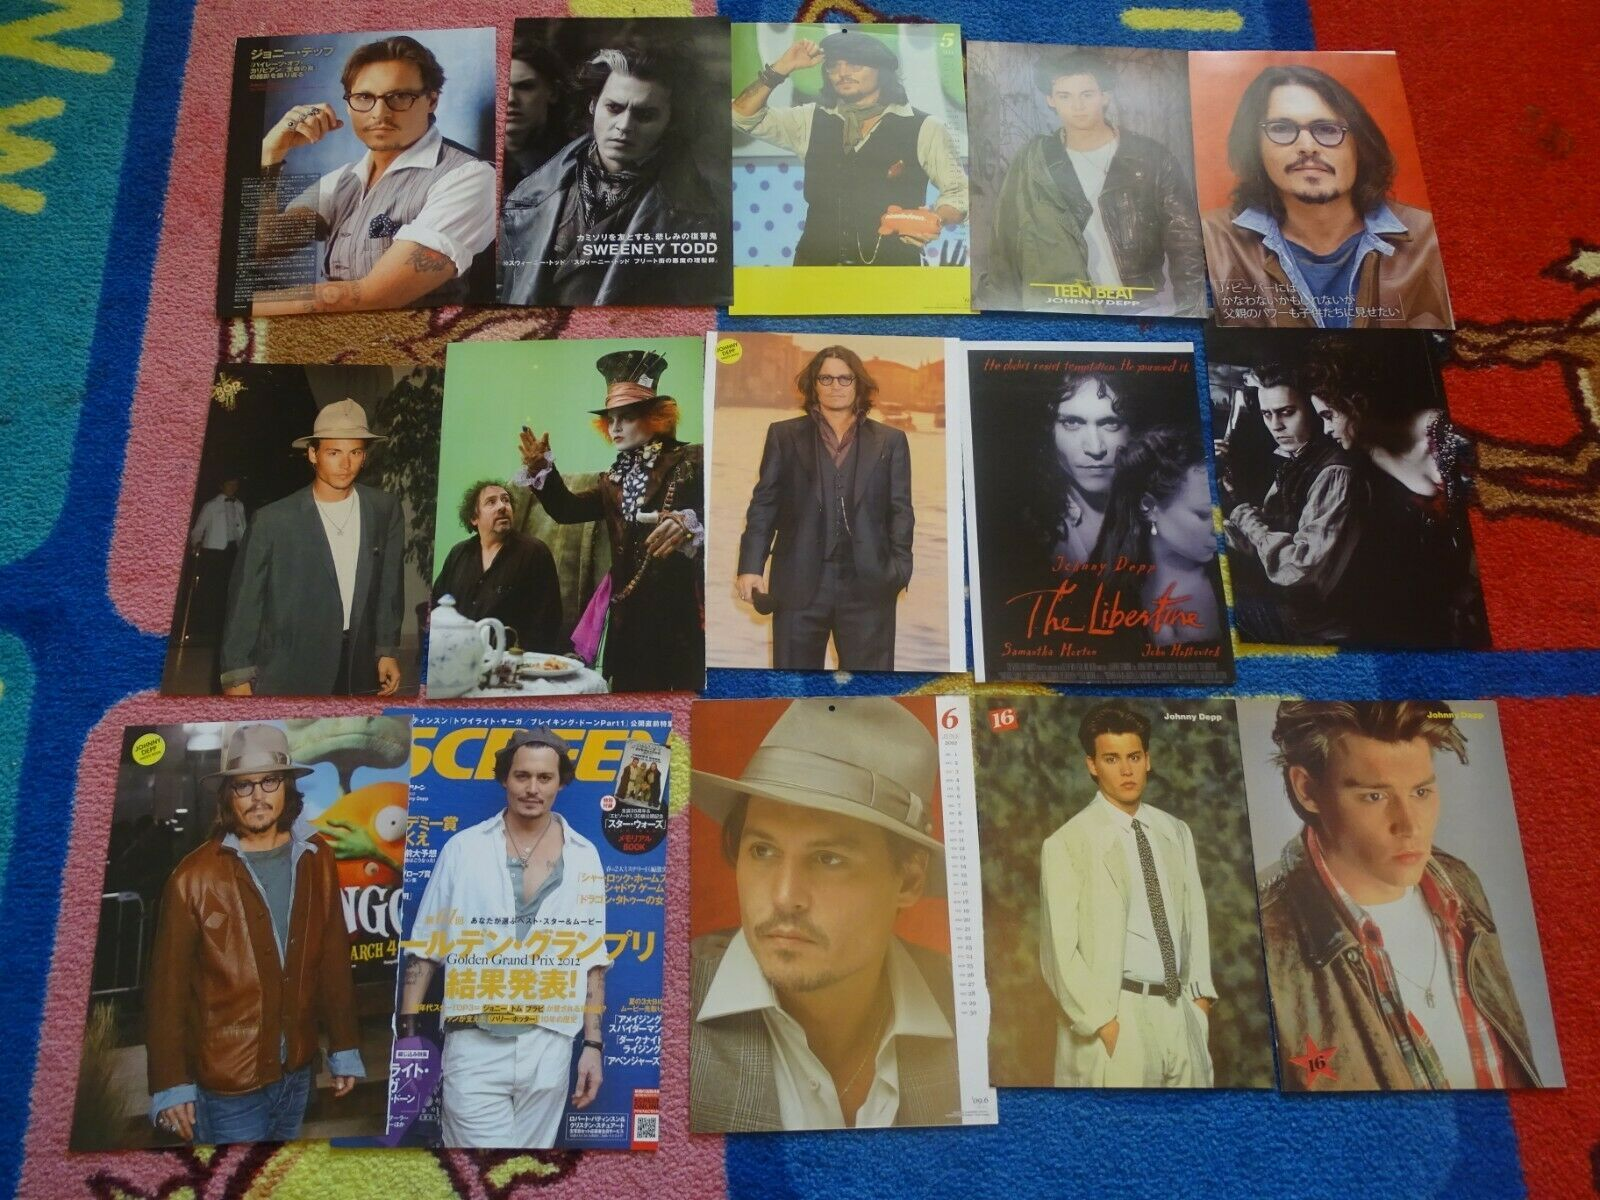 Primary image for Johnny Depp teen magazine pinup clippings lot Teen Beat Bop Superteen teen idol